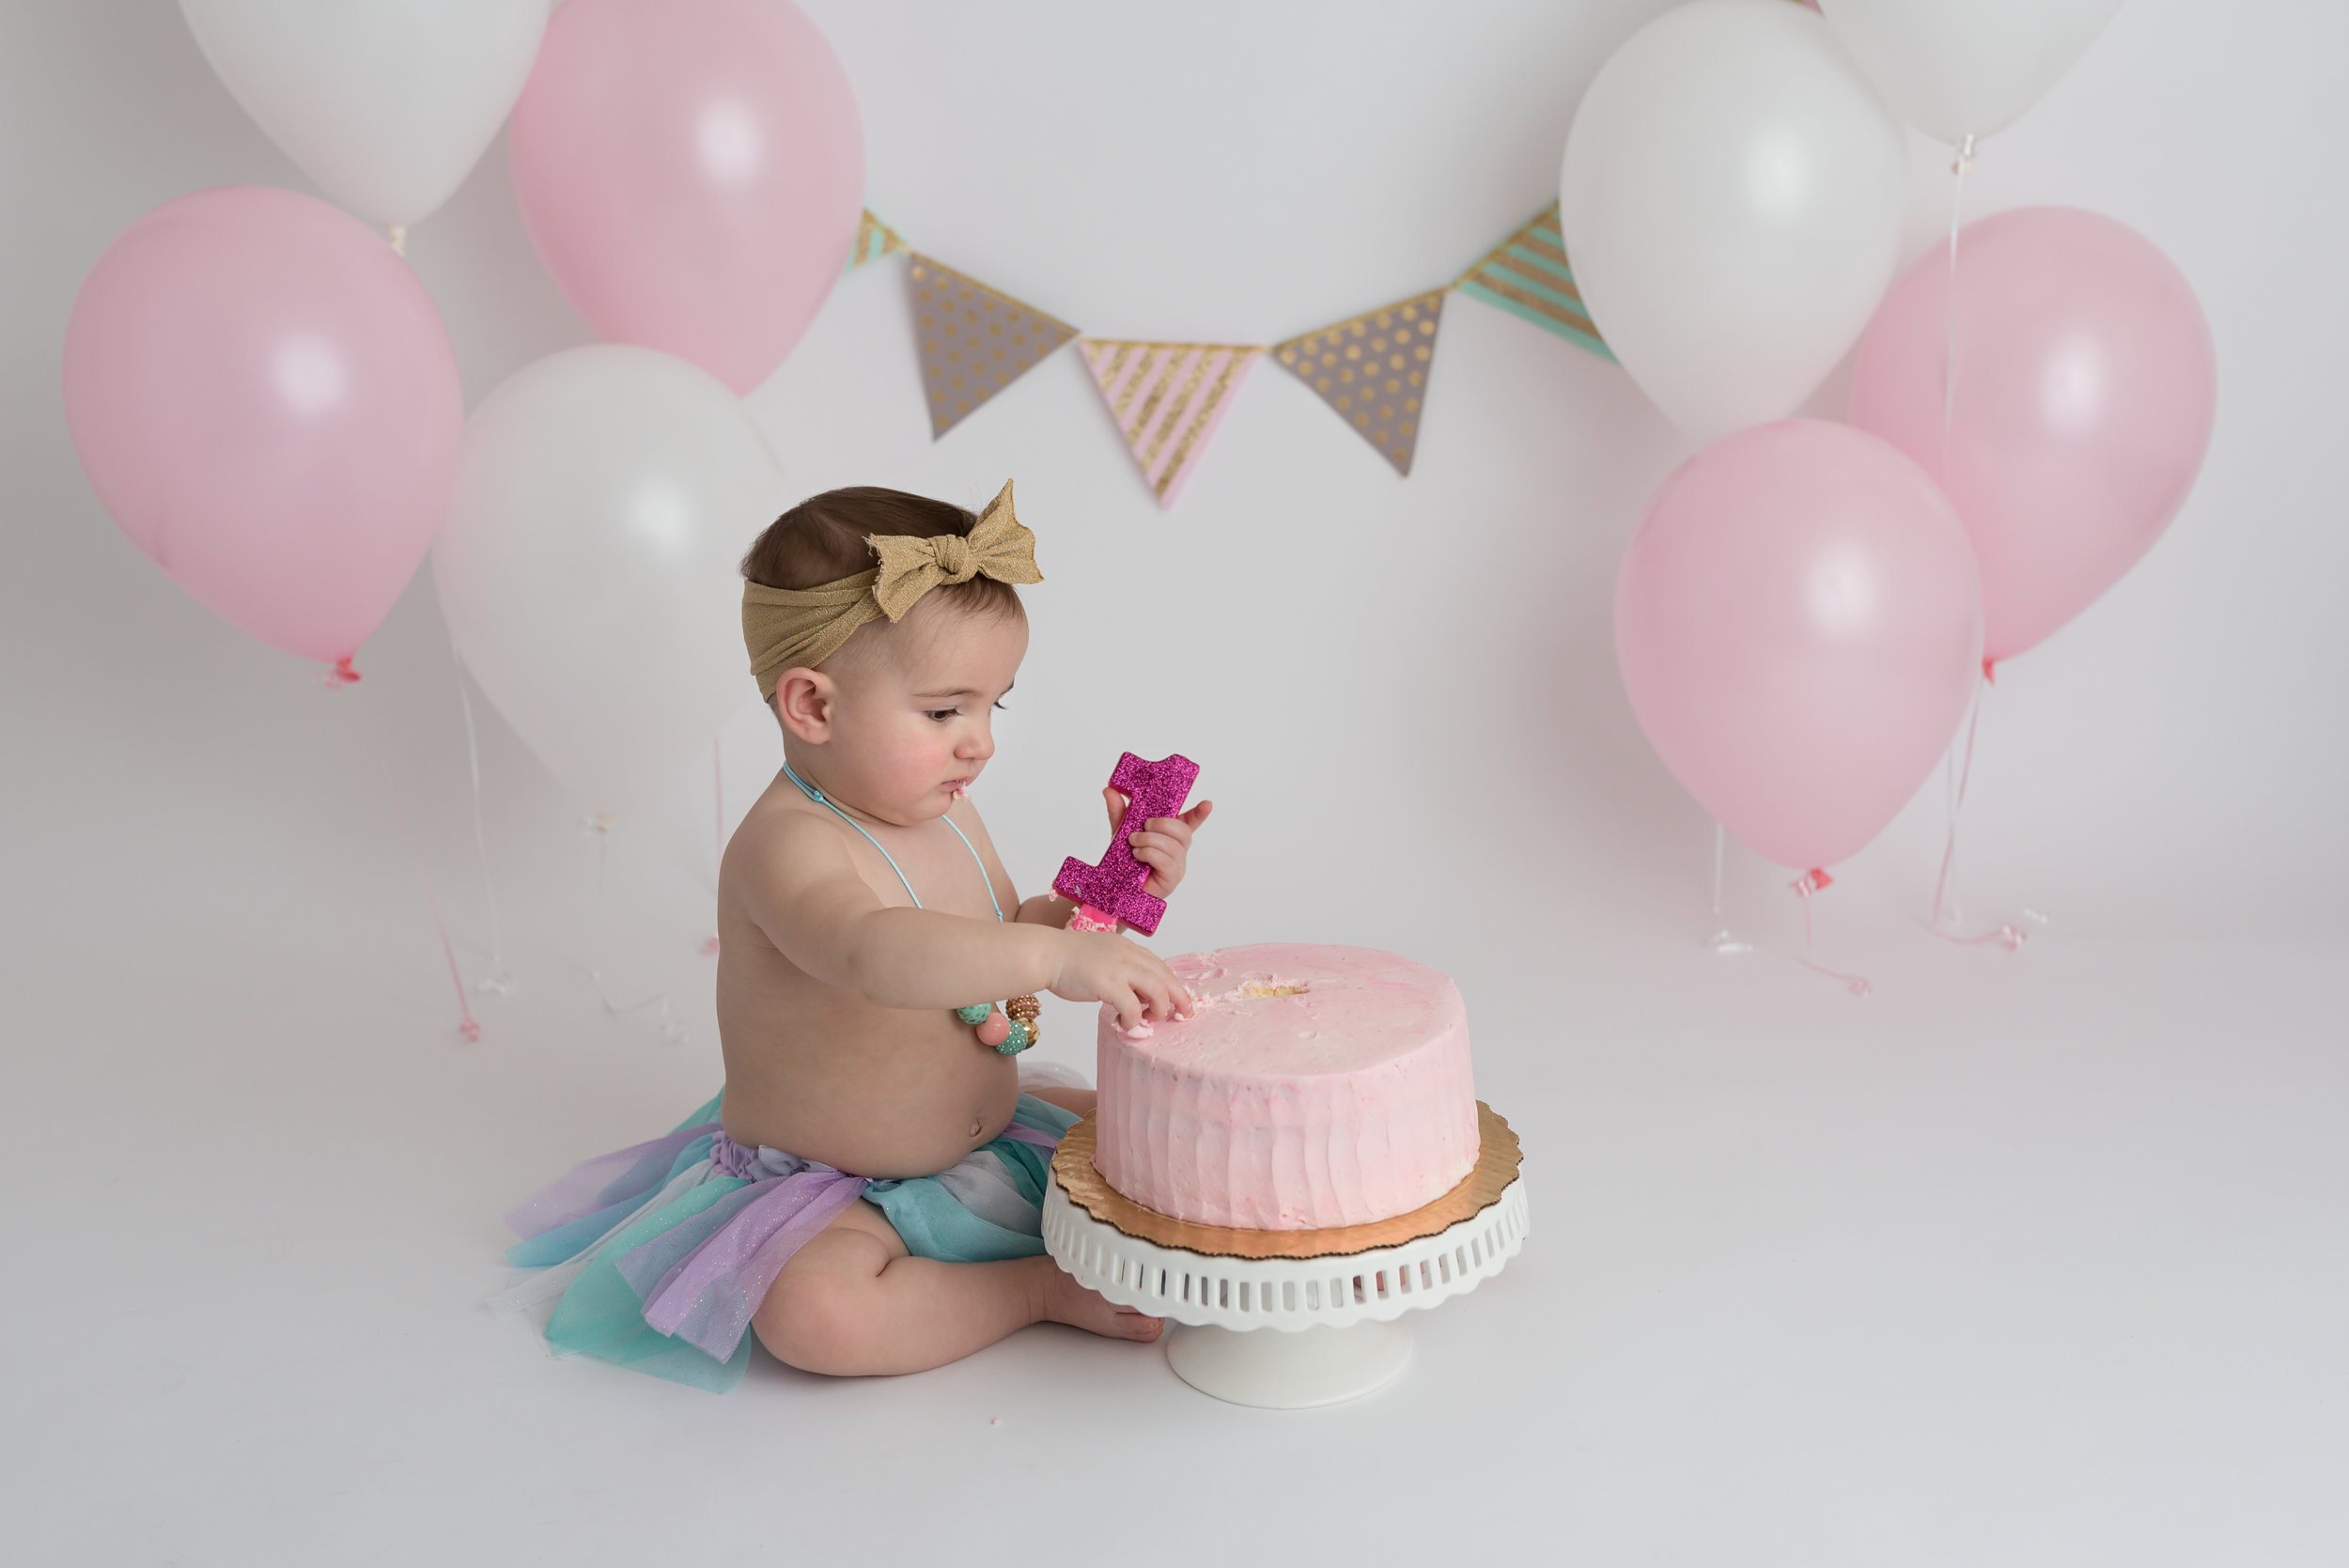 Charleston-Cake-Smash-Photographer-FSP_0871 copy.jpg